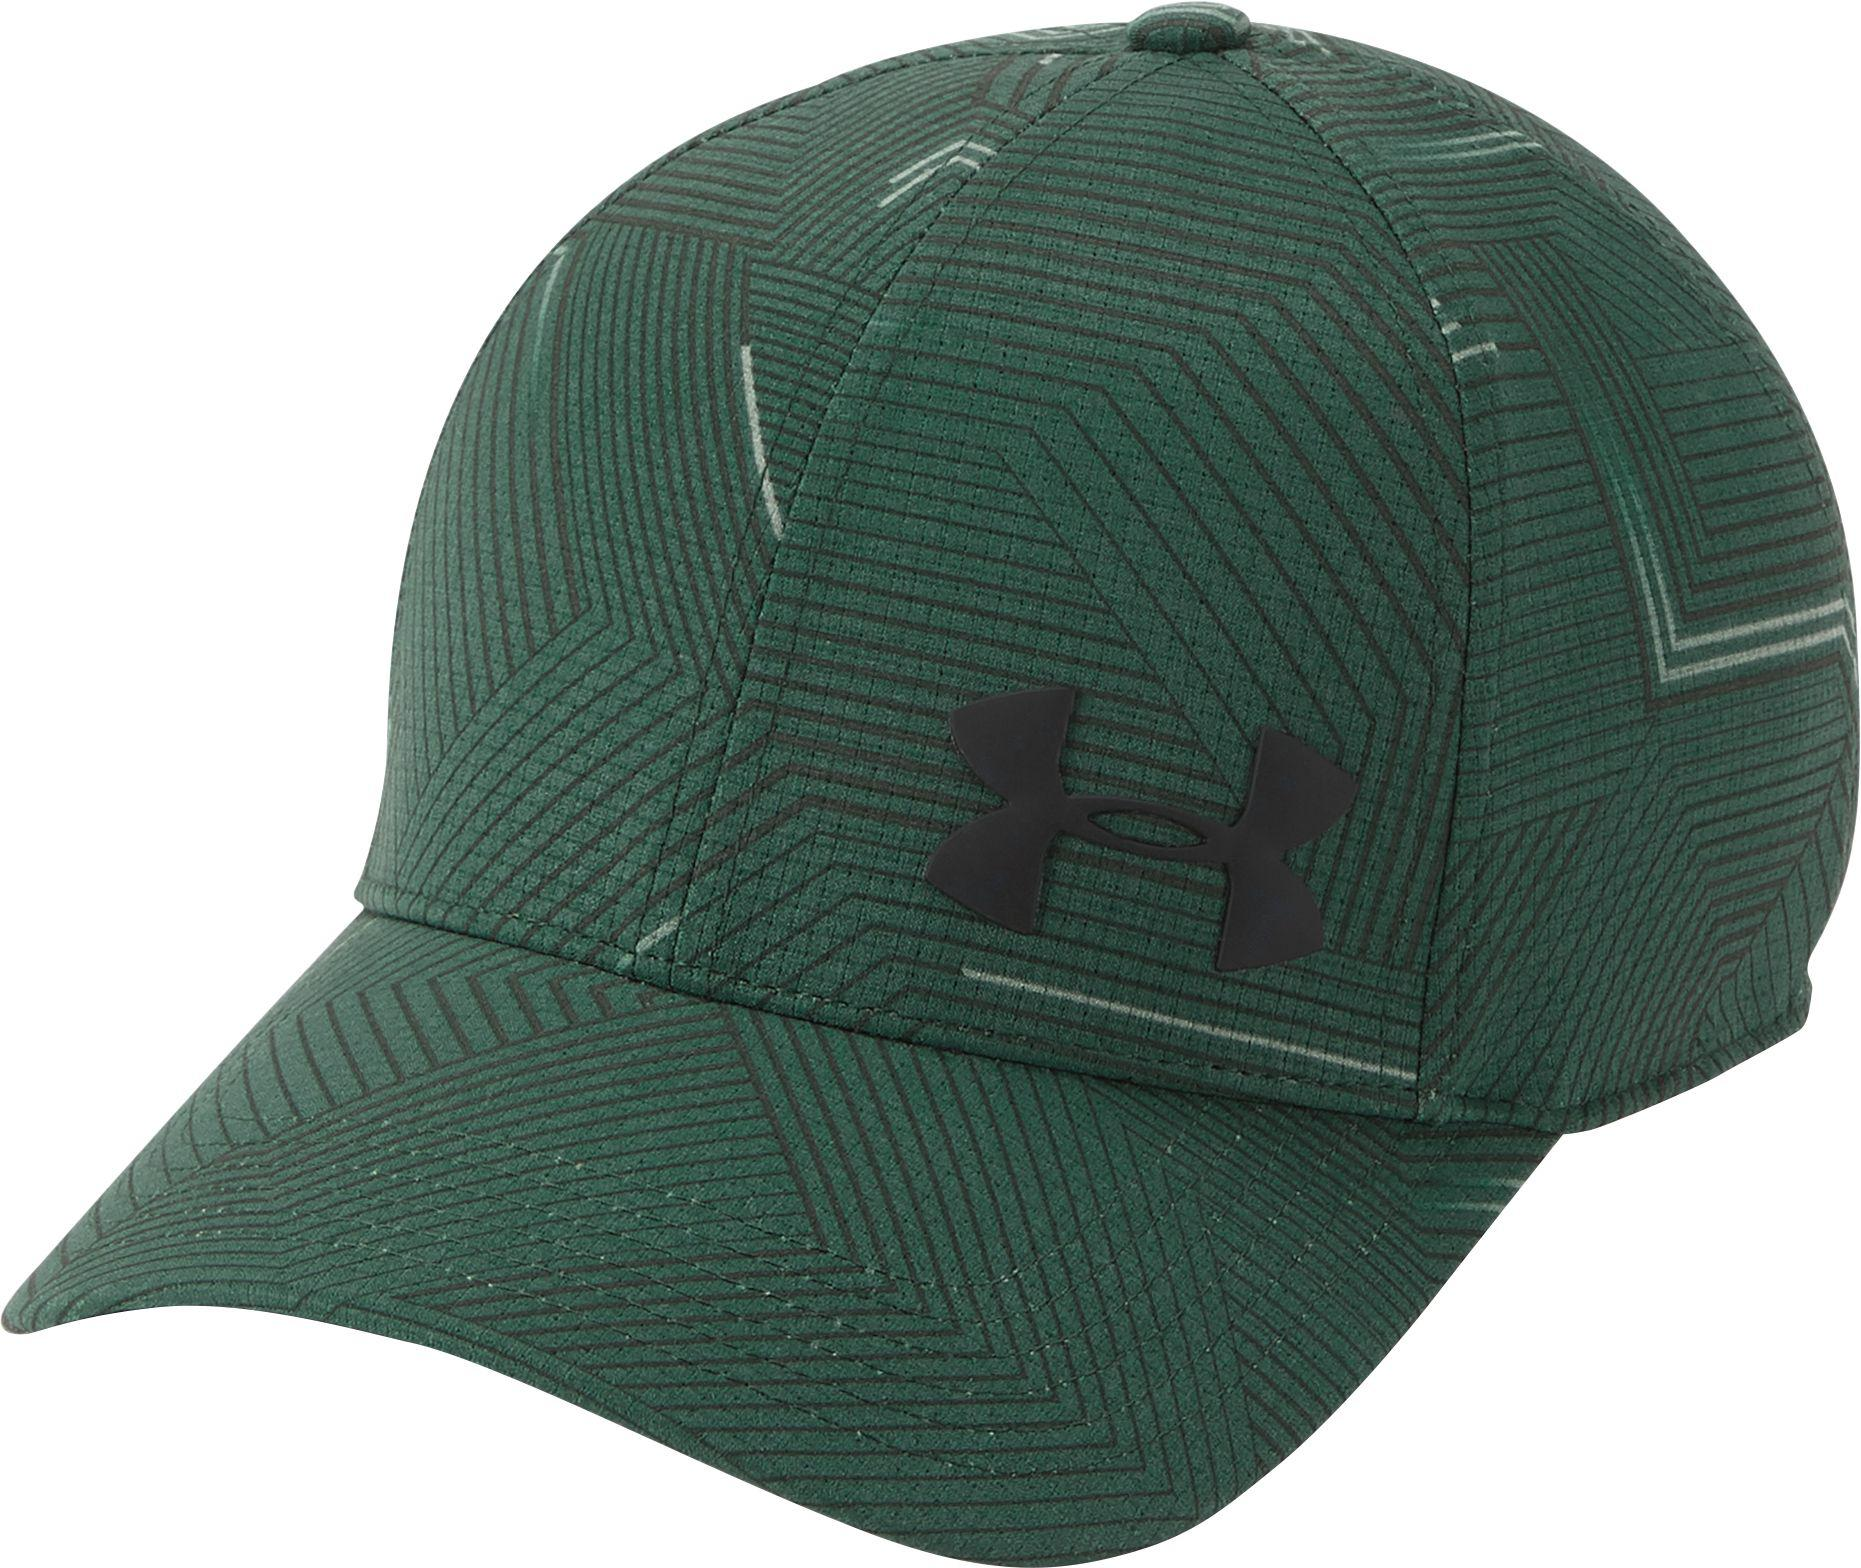 9200e472fd7 ... UA Blitzing II Stretch Fit Cap (Neon Green)  Under armour Baseball Cap  Green Hats for Men for sale